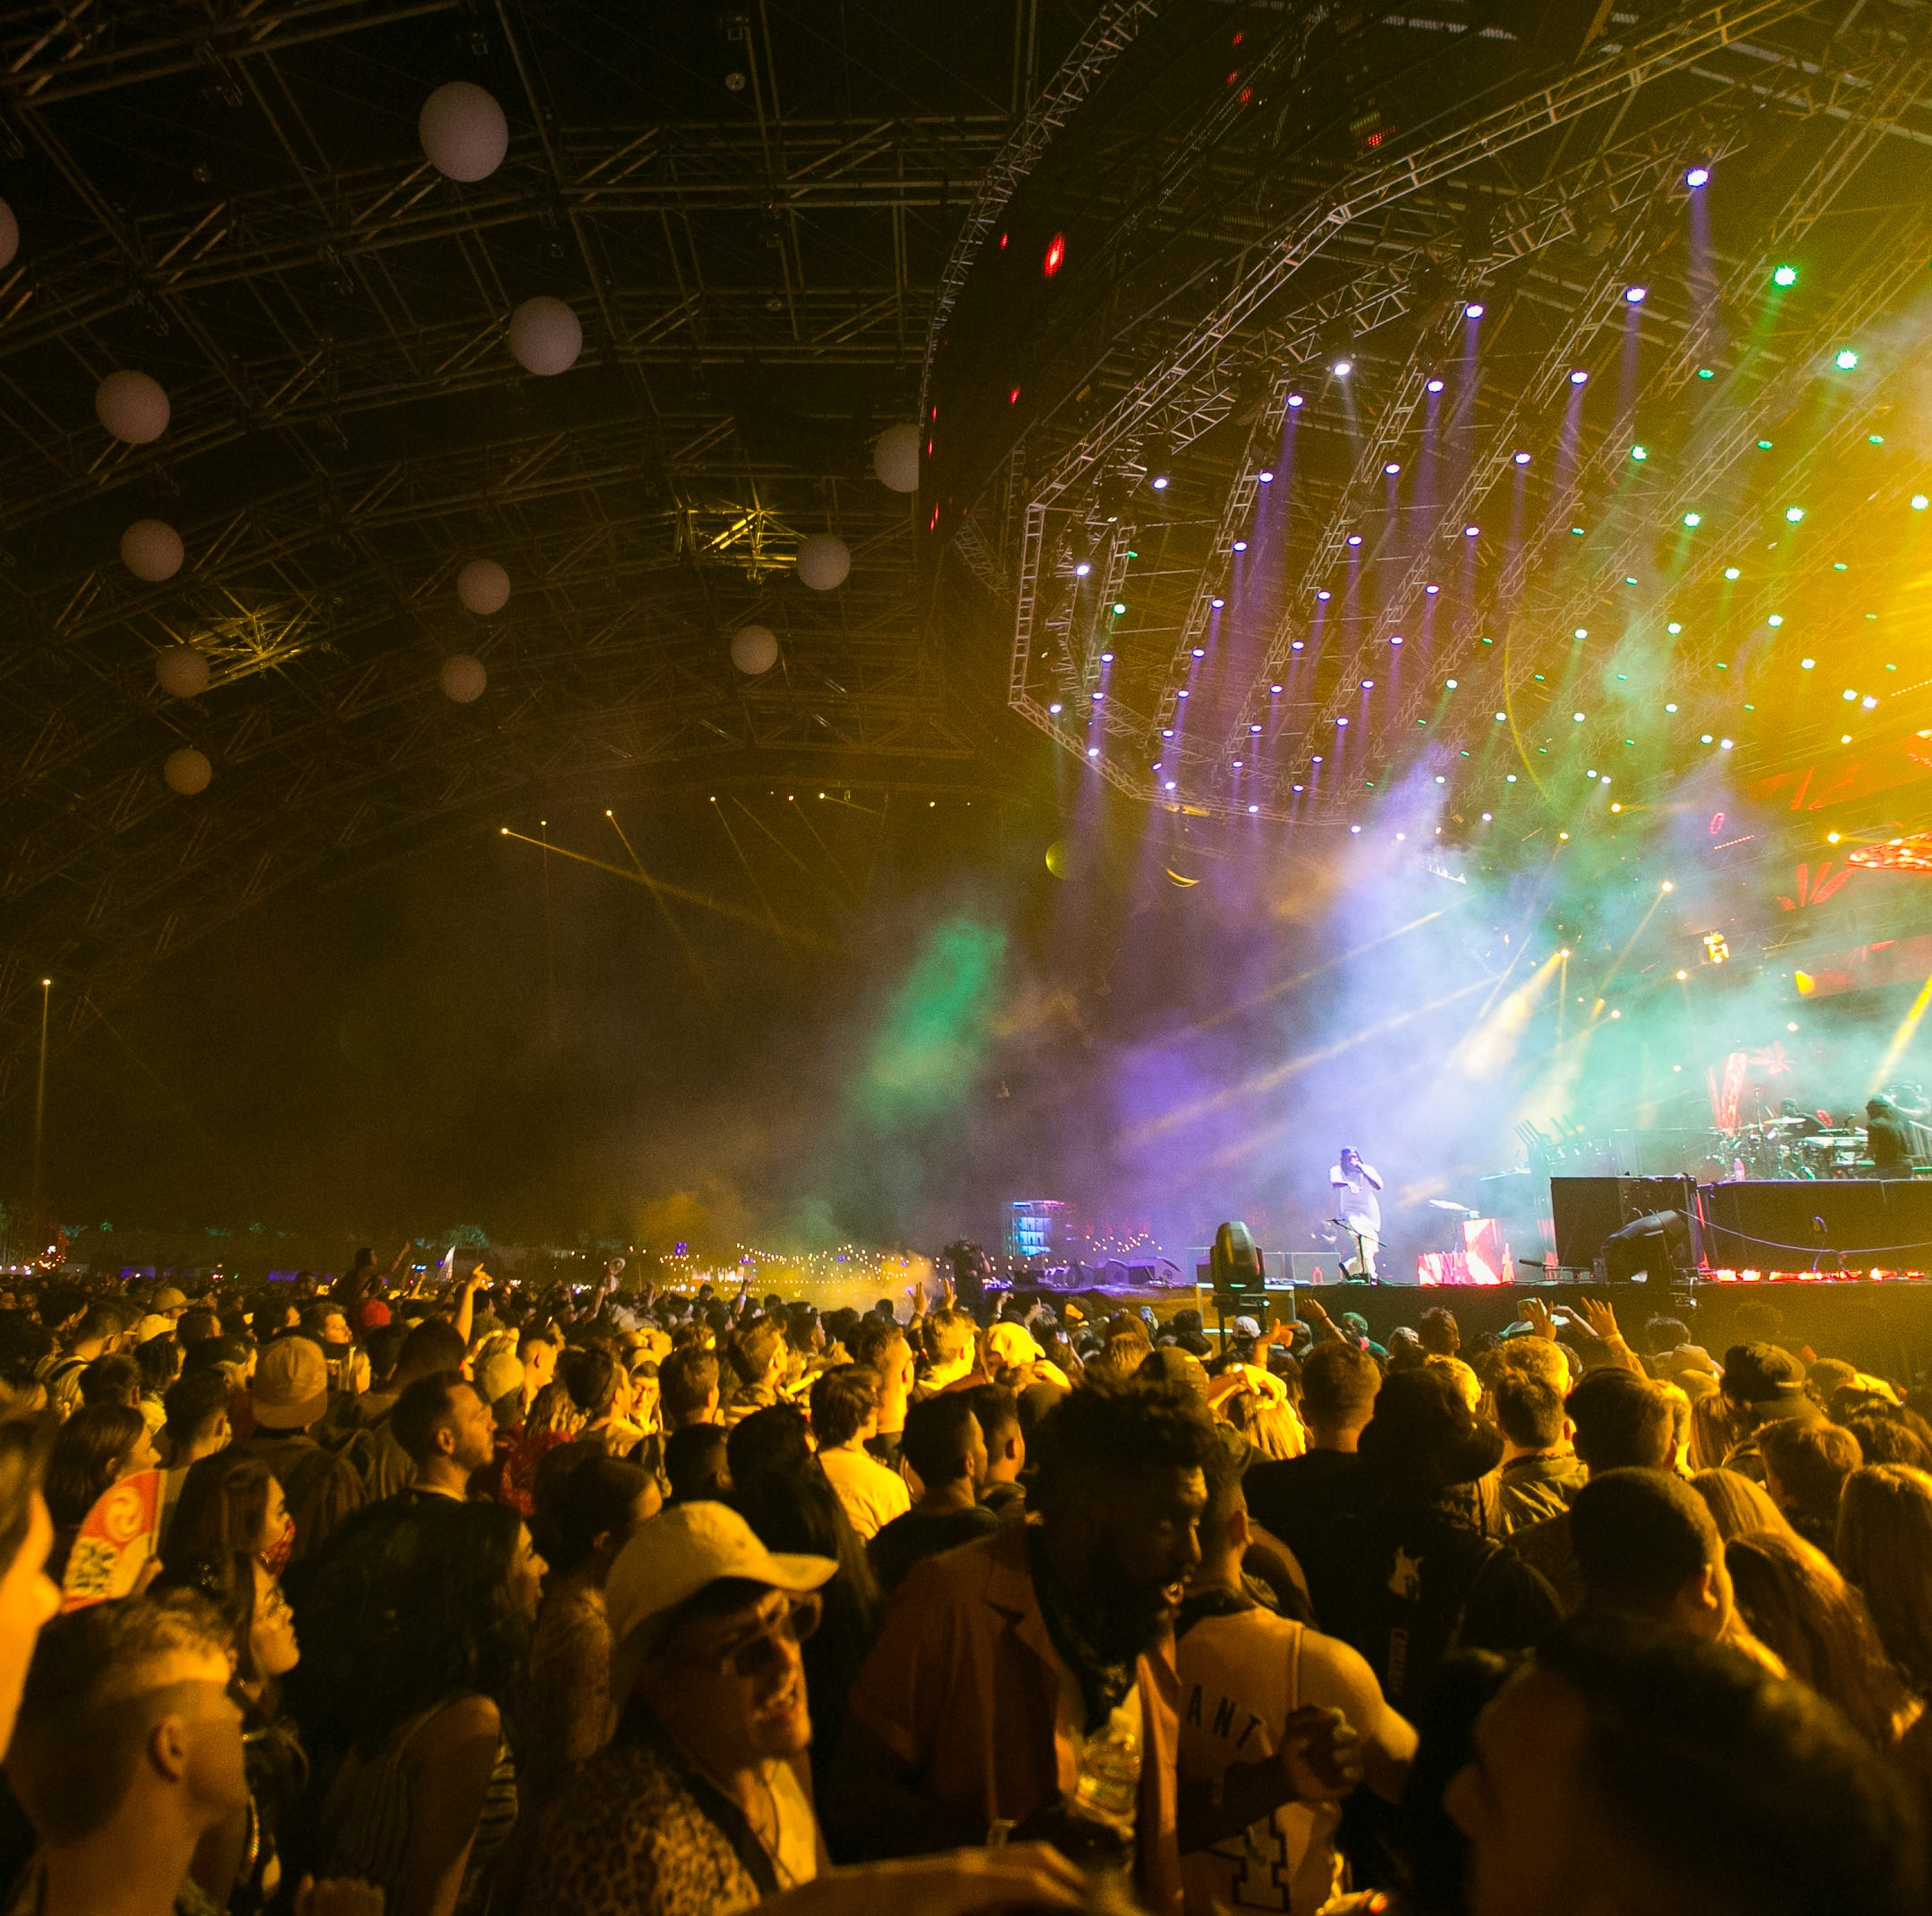 Going to Coachella Weekend 2? We made these 6 mistakes so you don't have to